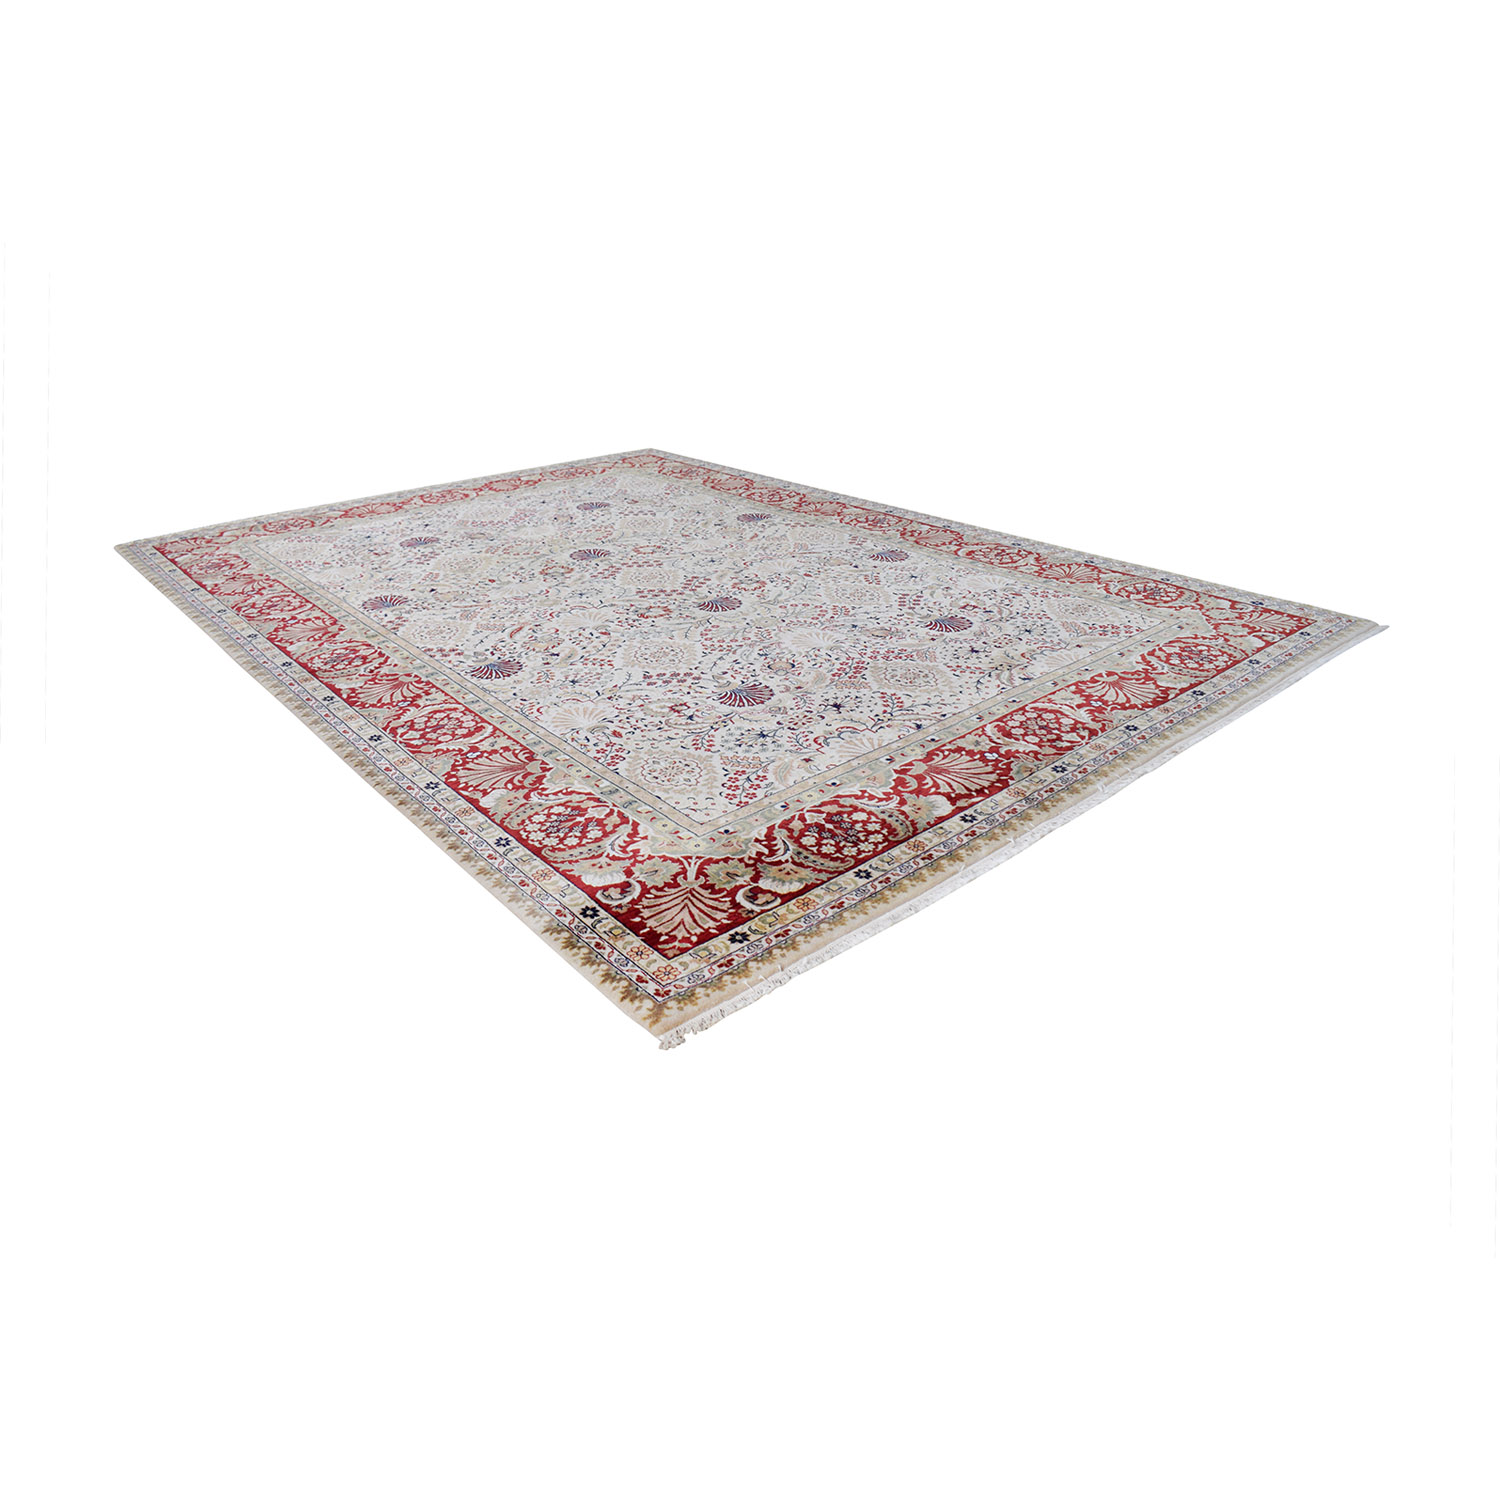 ABC Carpet & Home ABC Carpet & Home Indian Tabriz Rug Decor